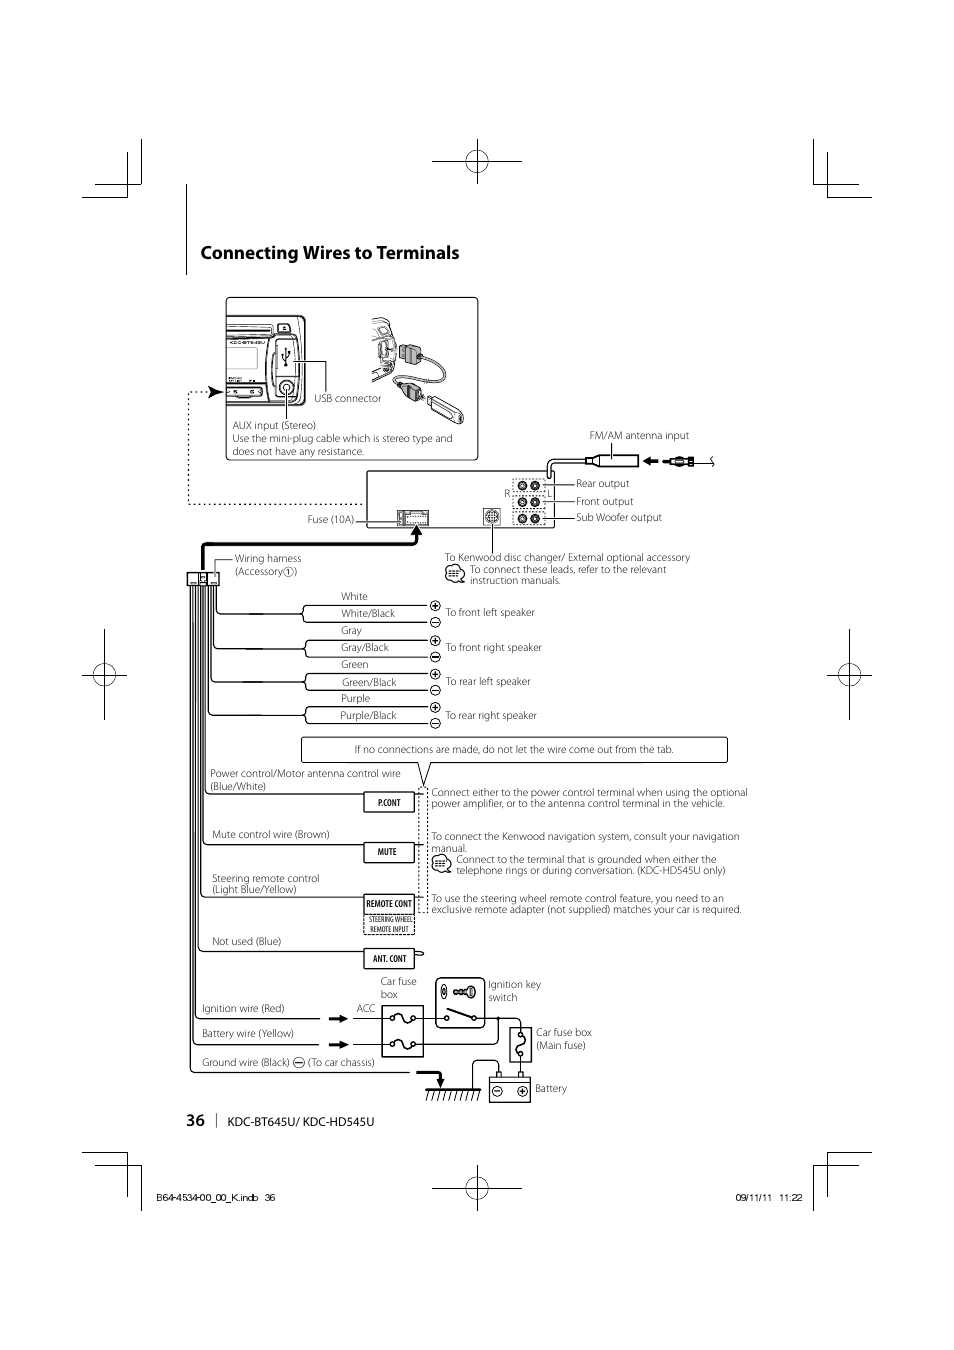 hight resolution of connecting wires to terminals kenwood kdc hd545u user manual kenwood kdc 138 wiring harness diagram kenwood kdc wiring harness diagram